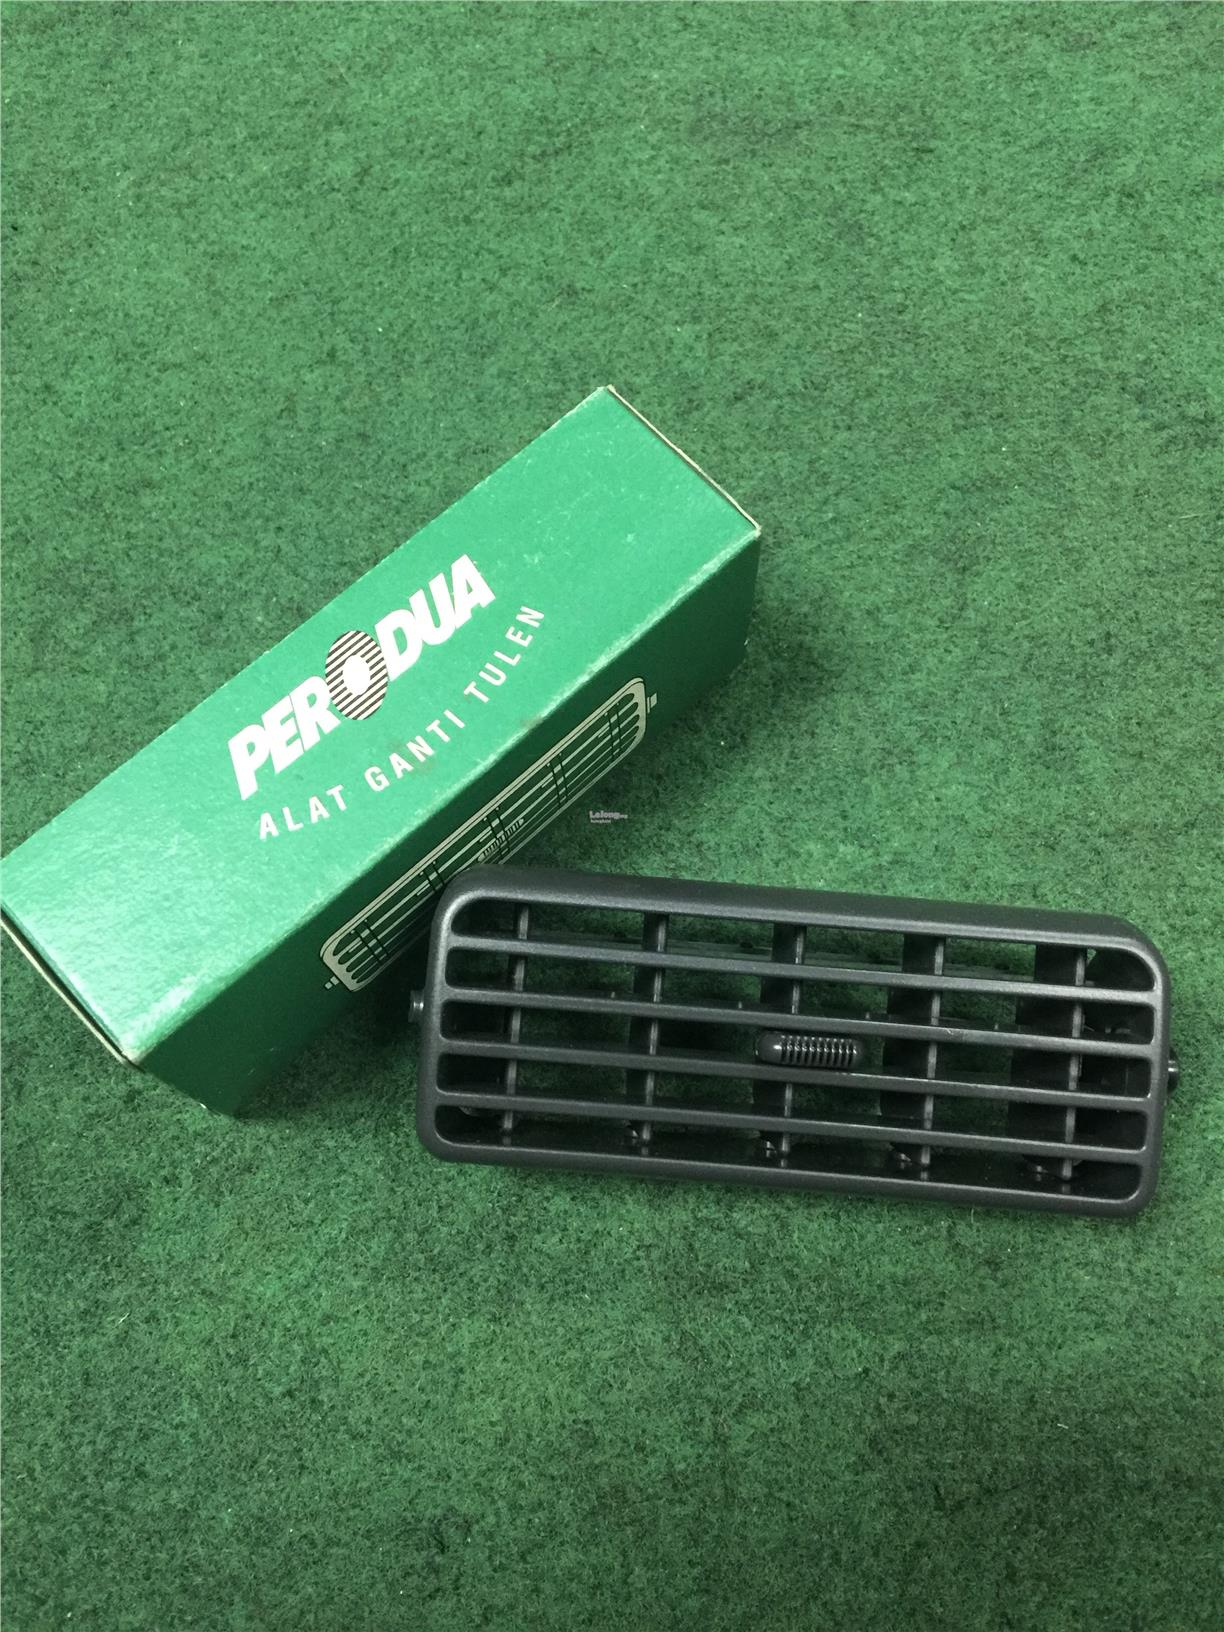 Aircon AC vent for Kancil (REGISTER ASSY, INSTRUMENT PANEL CENTER)